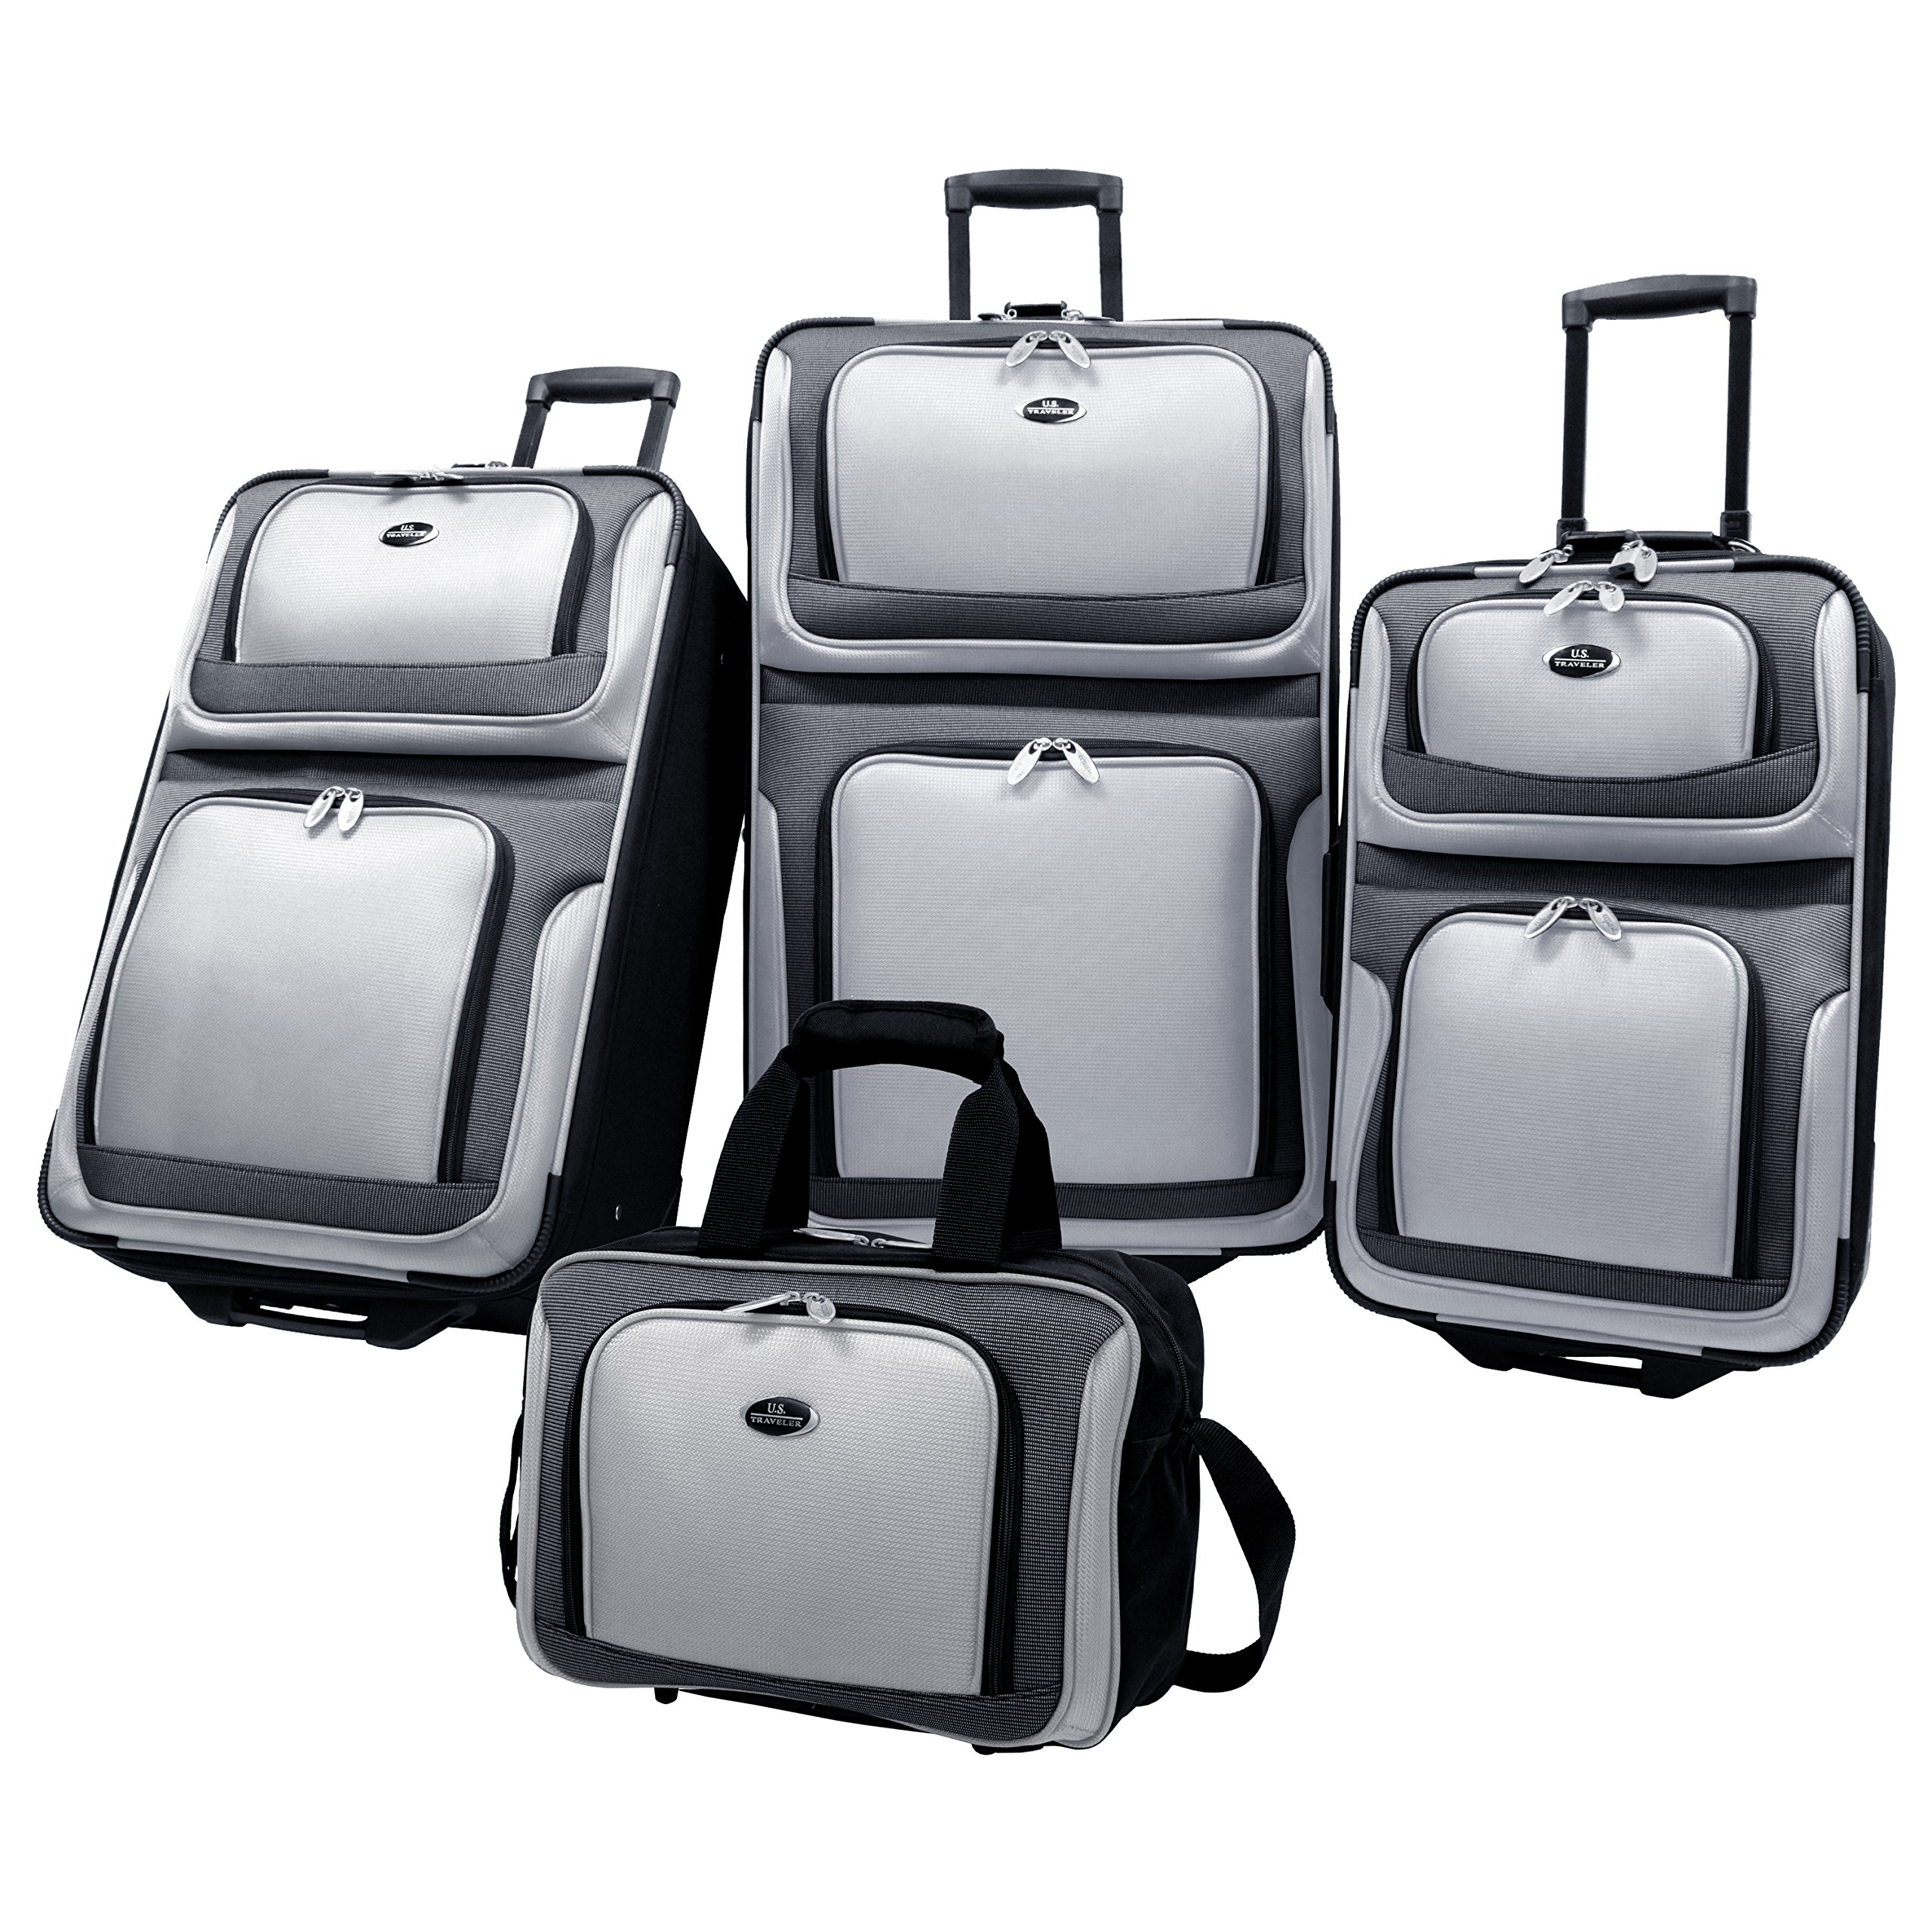 U.S. Traveler New Yorker Lightweight Expandable Rolling Luggage, Charcoal, 4-Piece Set